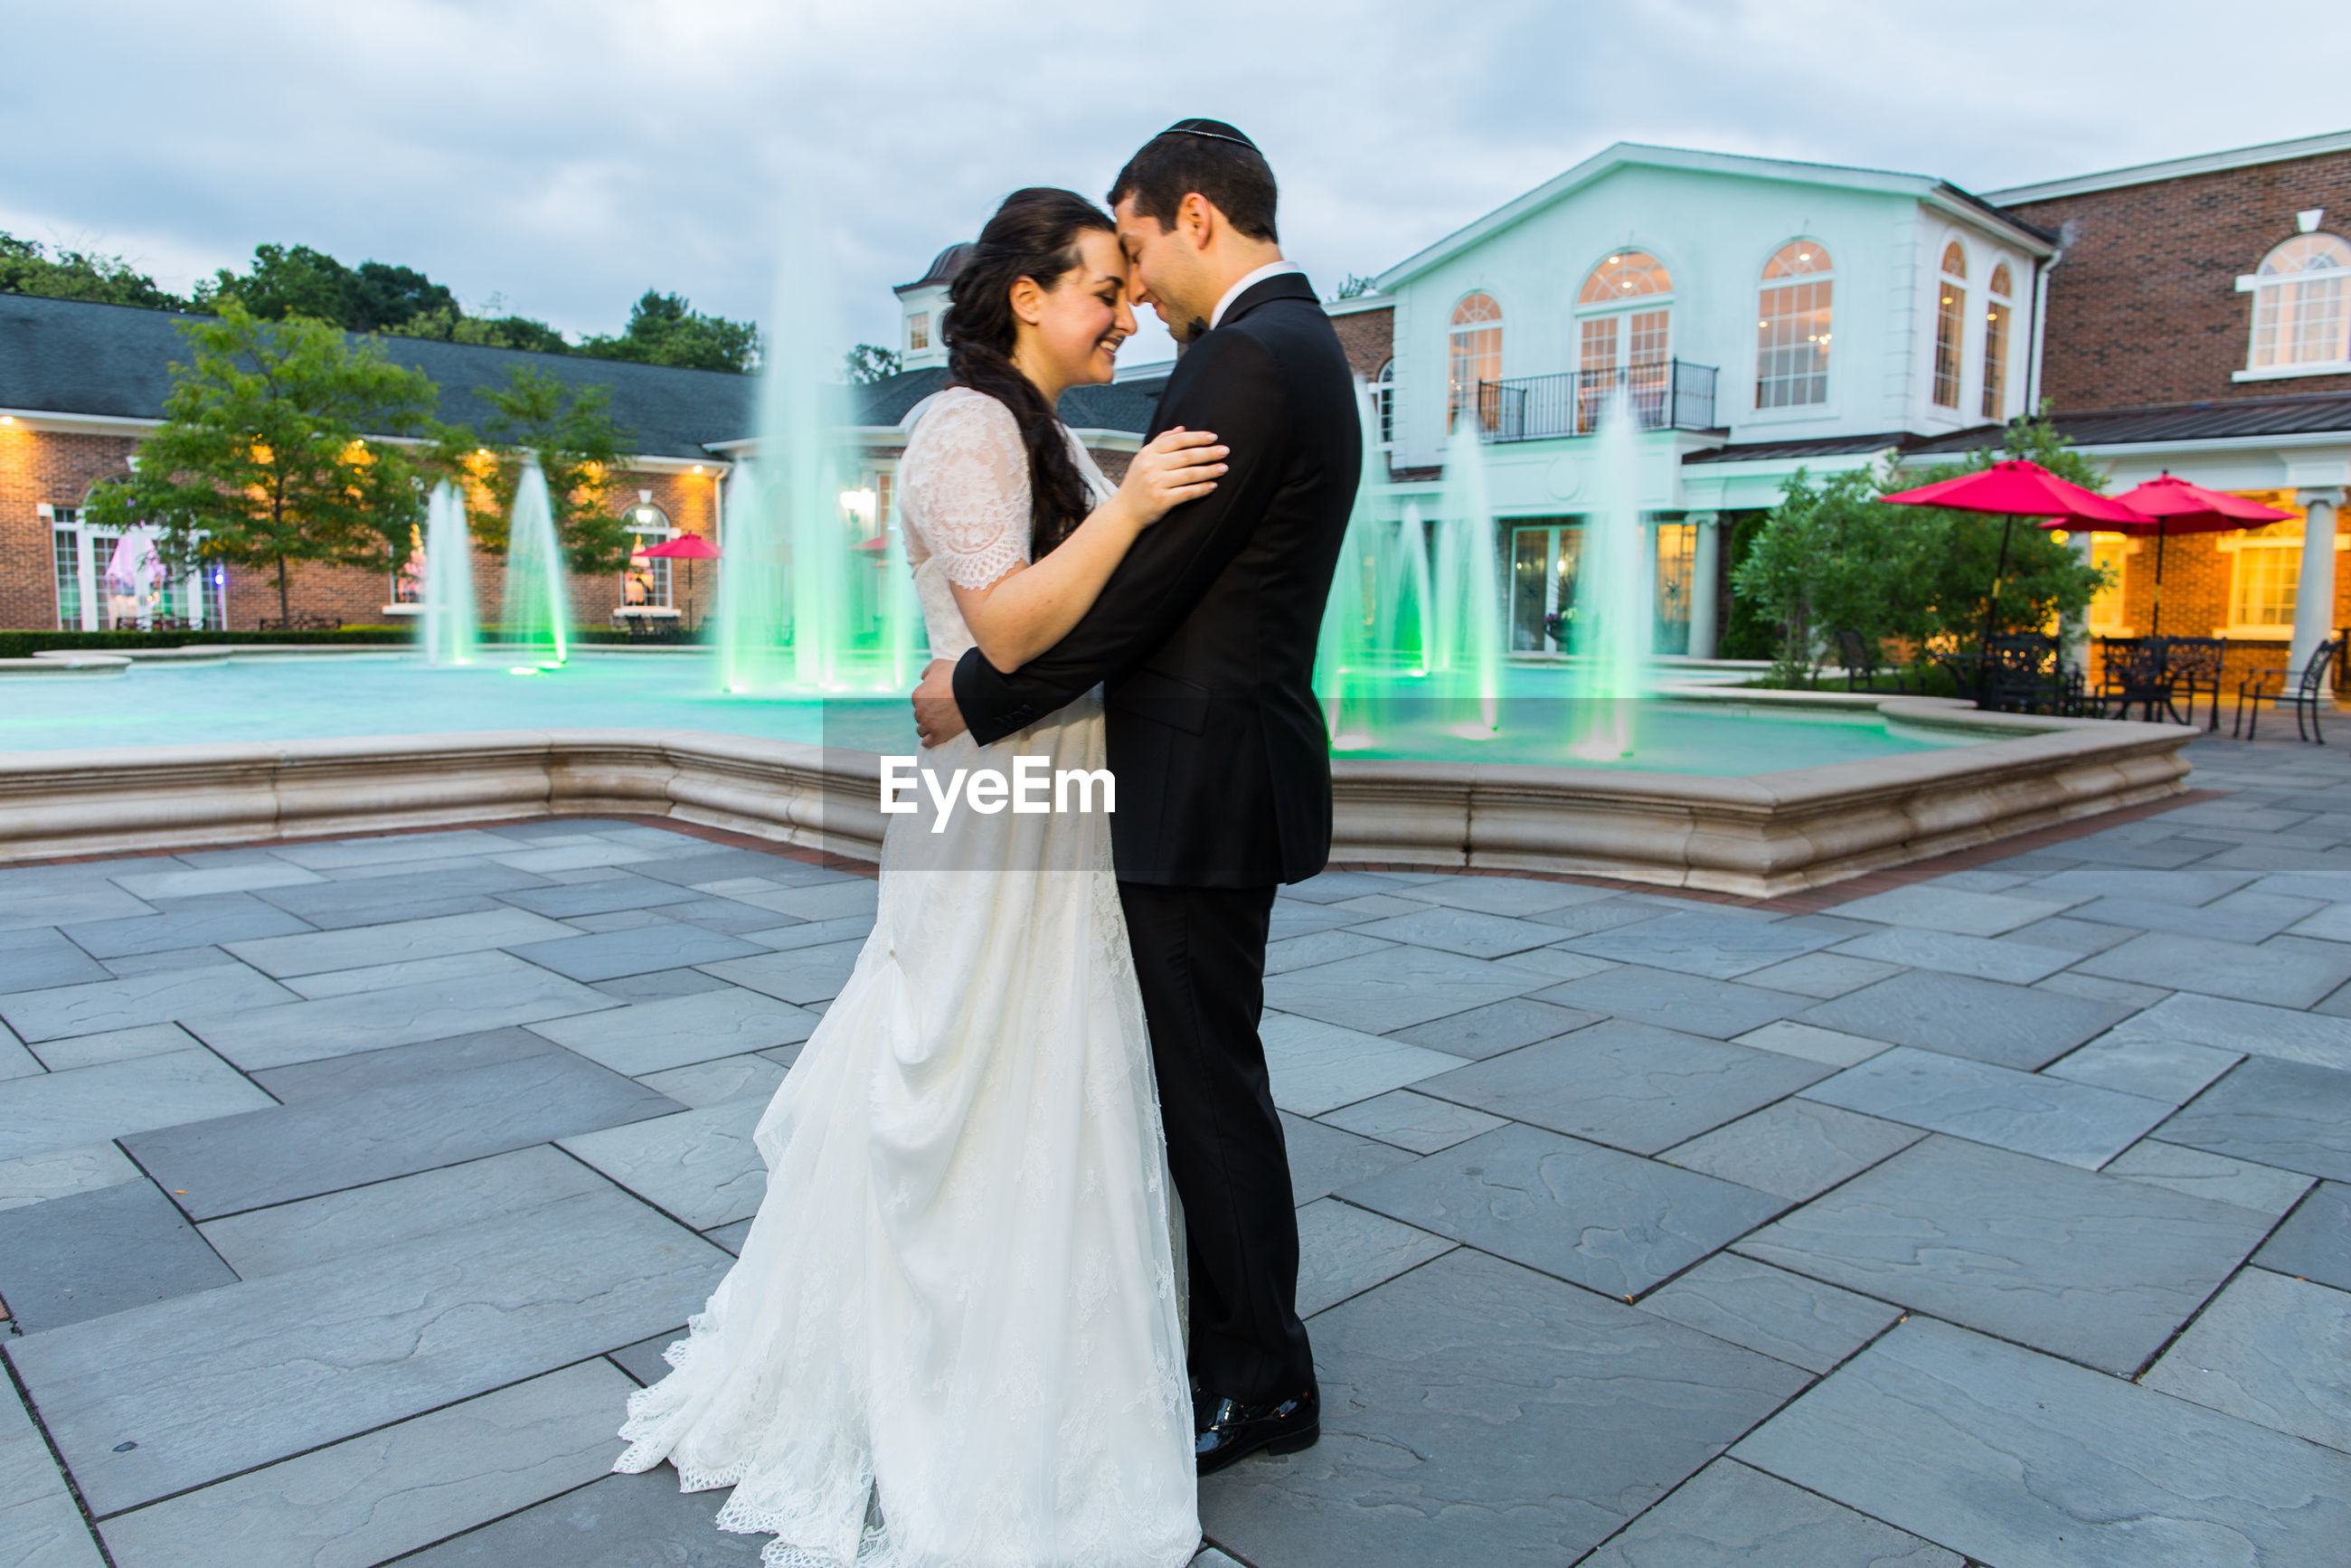 love, two people, romance, togetherness, heterosexual couple, women, embracing, mid adult, young women, young adult, bonding, beautiful people, affectionate, happiness, outdoors, celebration, full length, wedding, adult, people, adults only, wife, smiling, bride, bridegroom, wedding dress, day